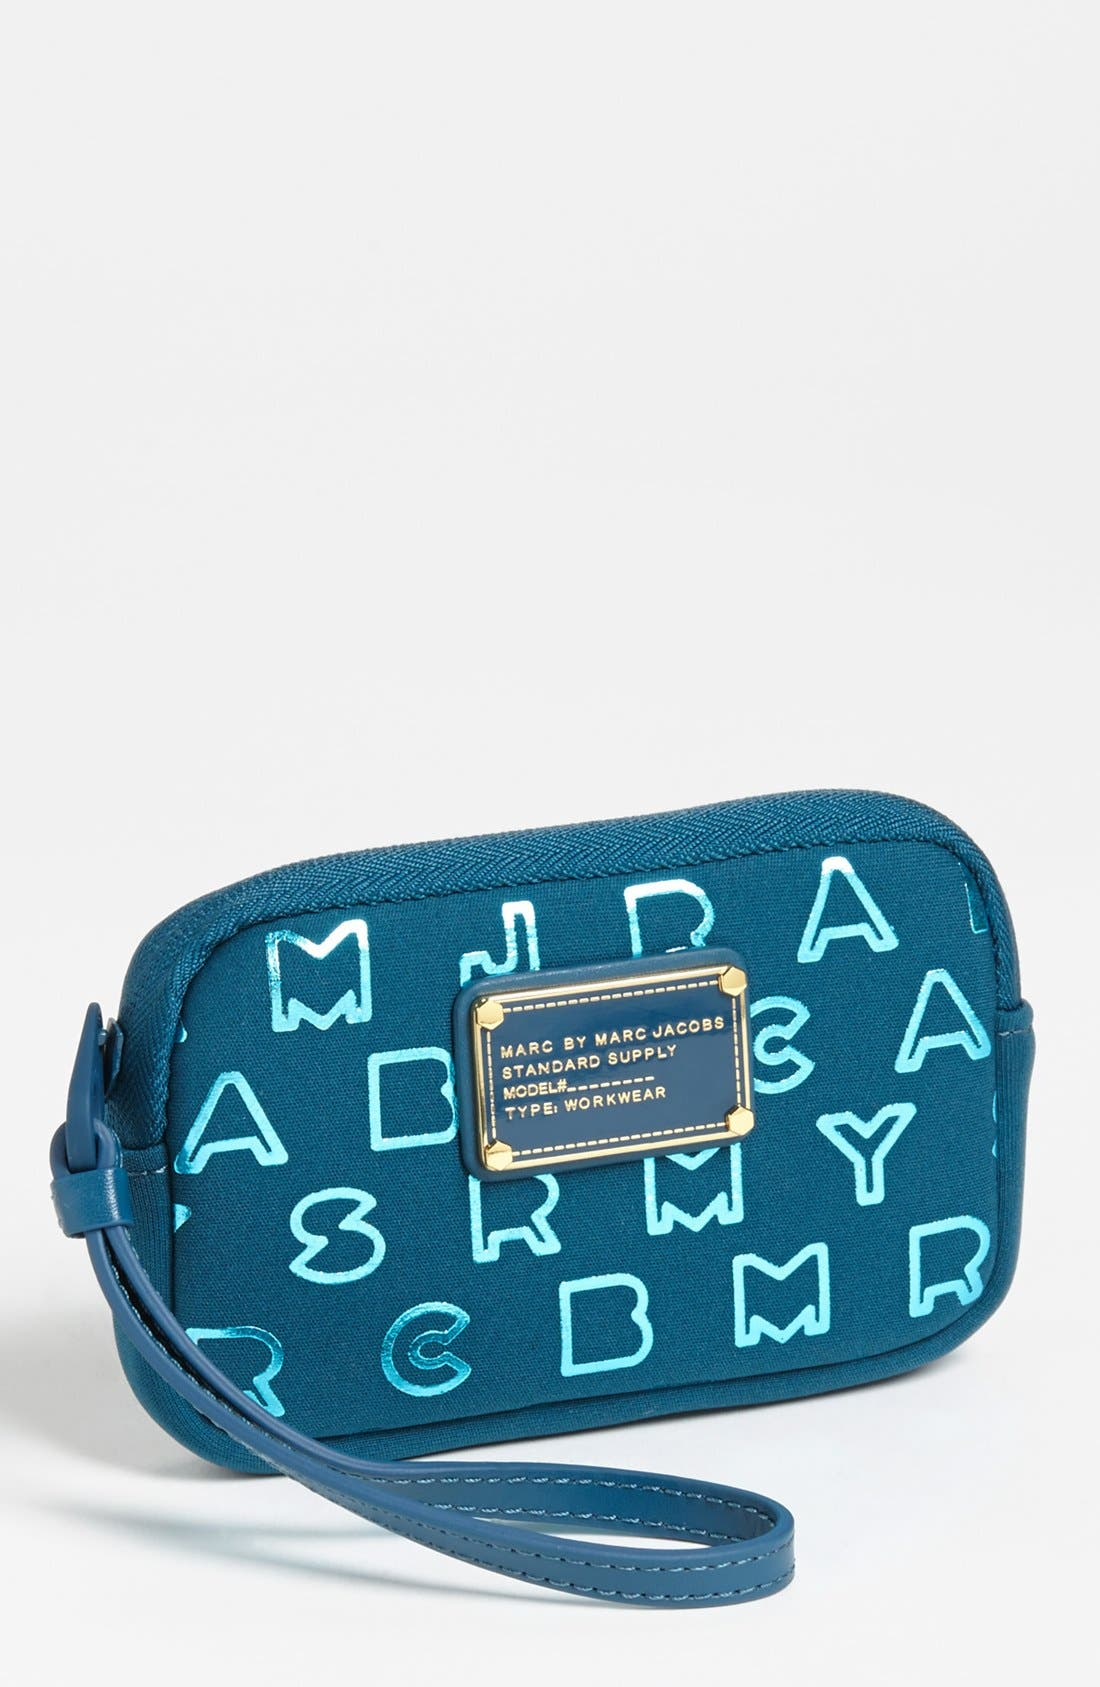 Alternate Image 1 Selected - MARC BY MARC JACOBS 'Dreamy Logo' Phone Wristlet